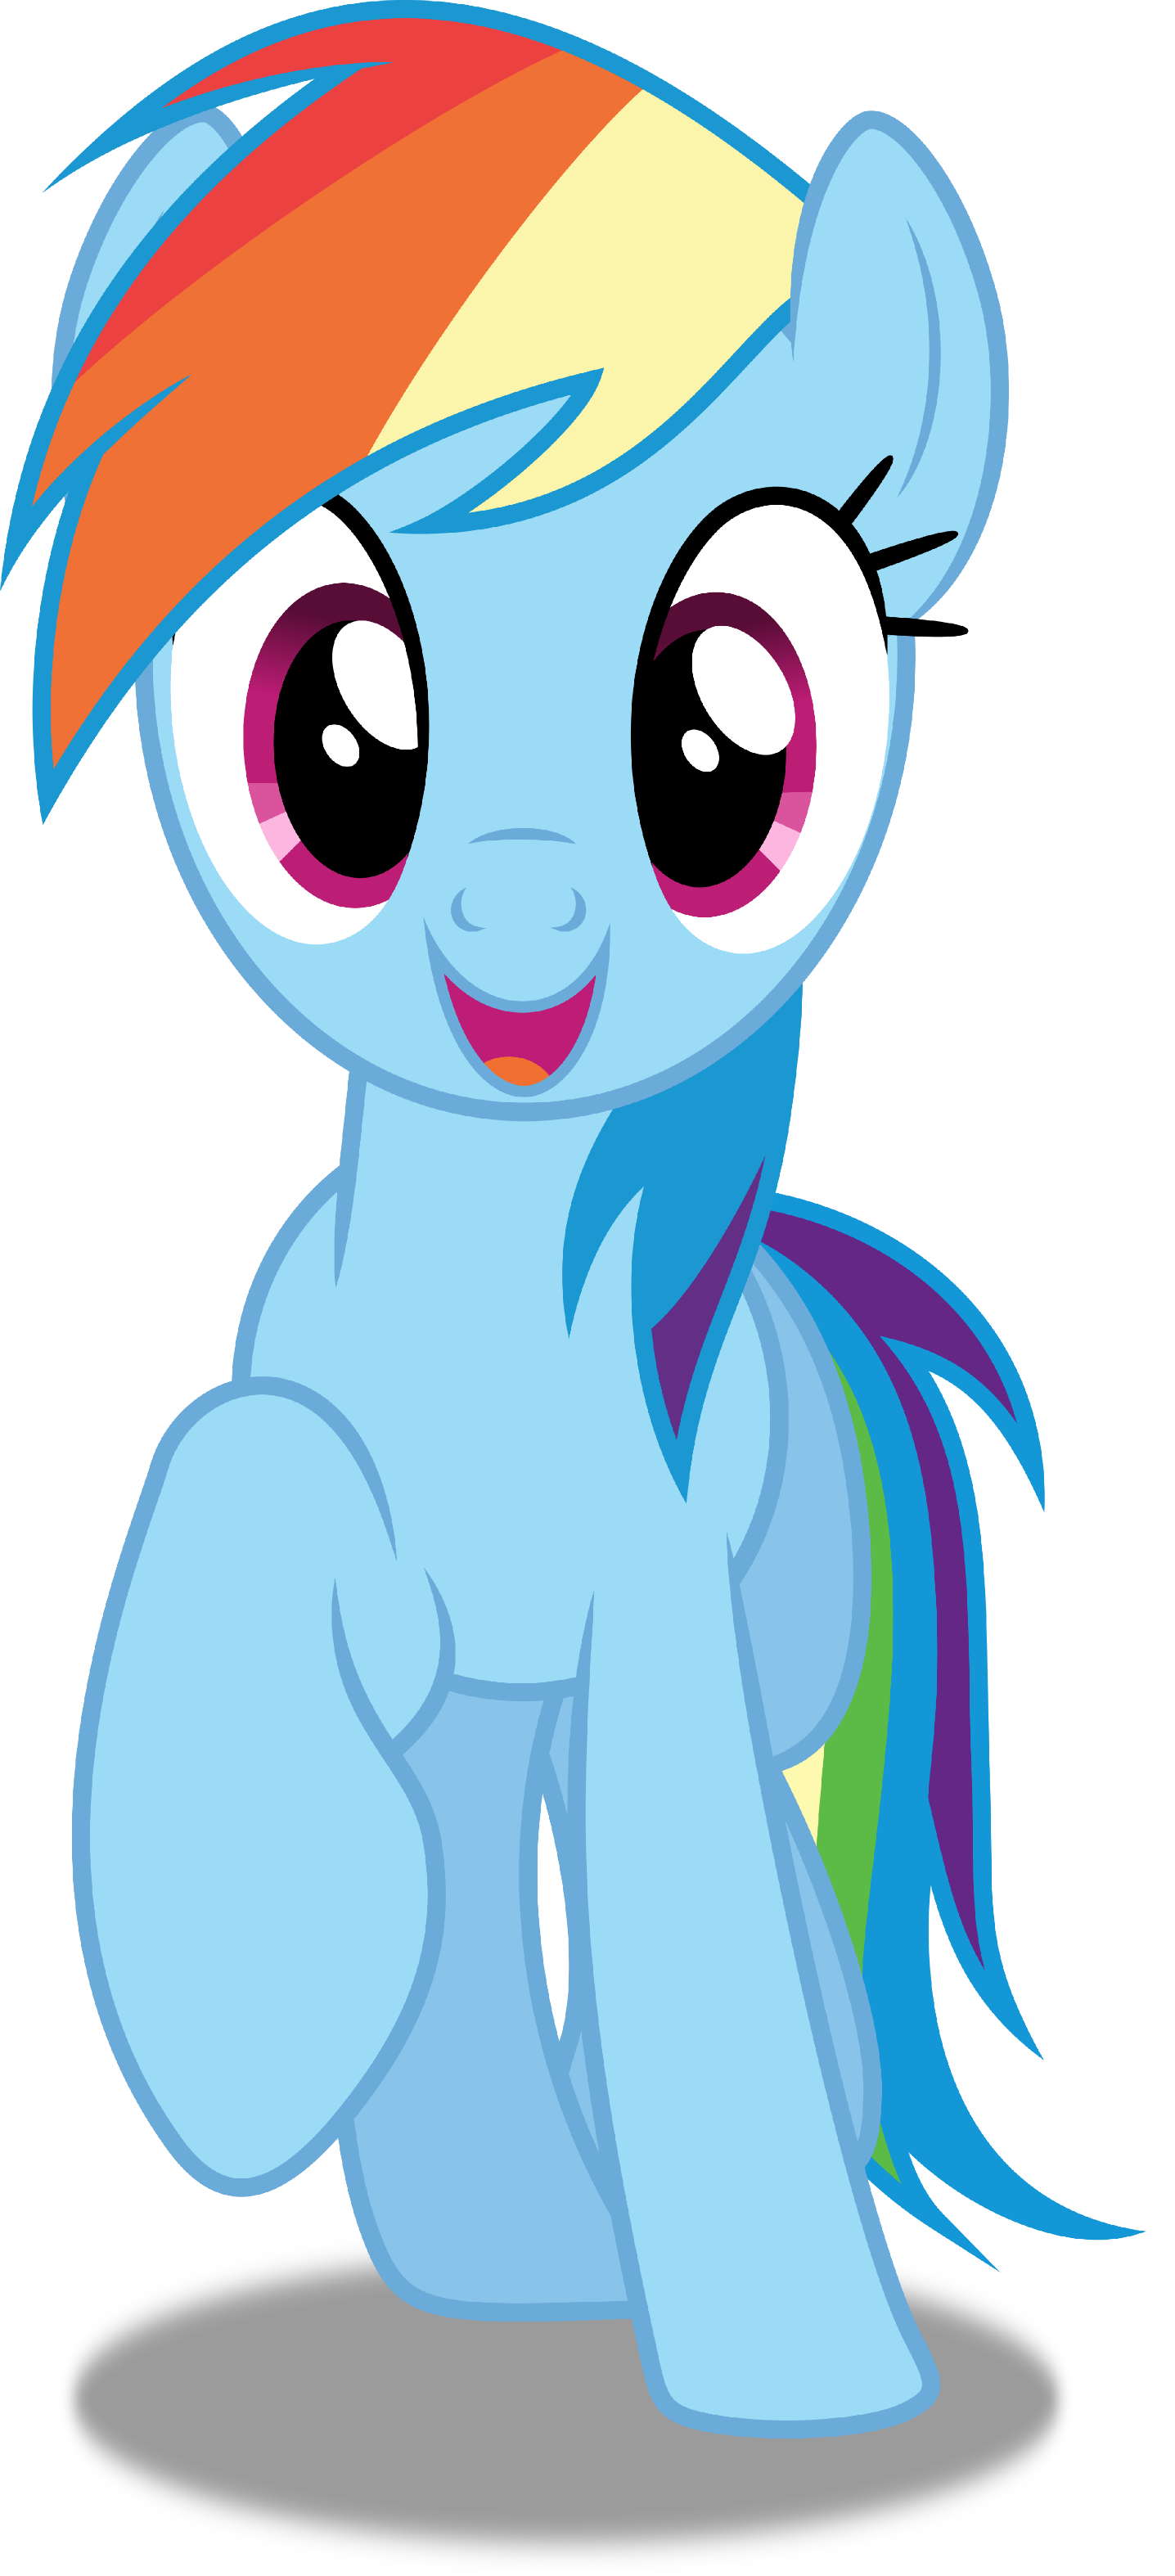 1436x3148 Pin By Ramesses Owes The Brony On Mlp (My Little Pony Friendship